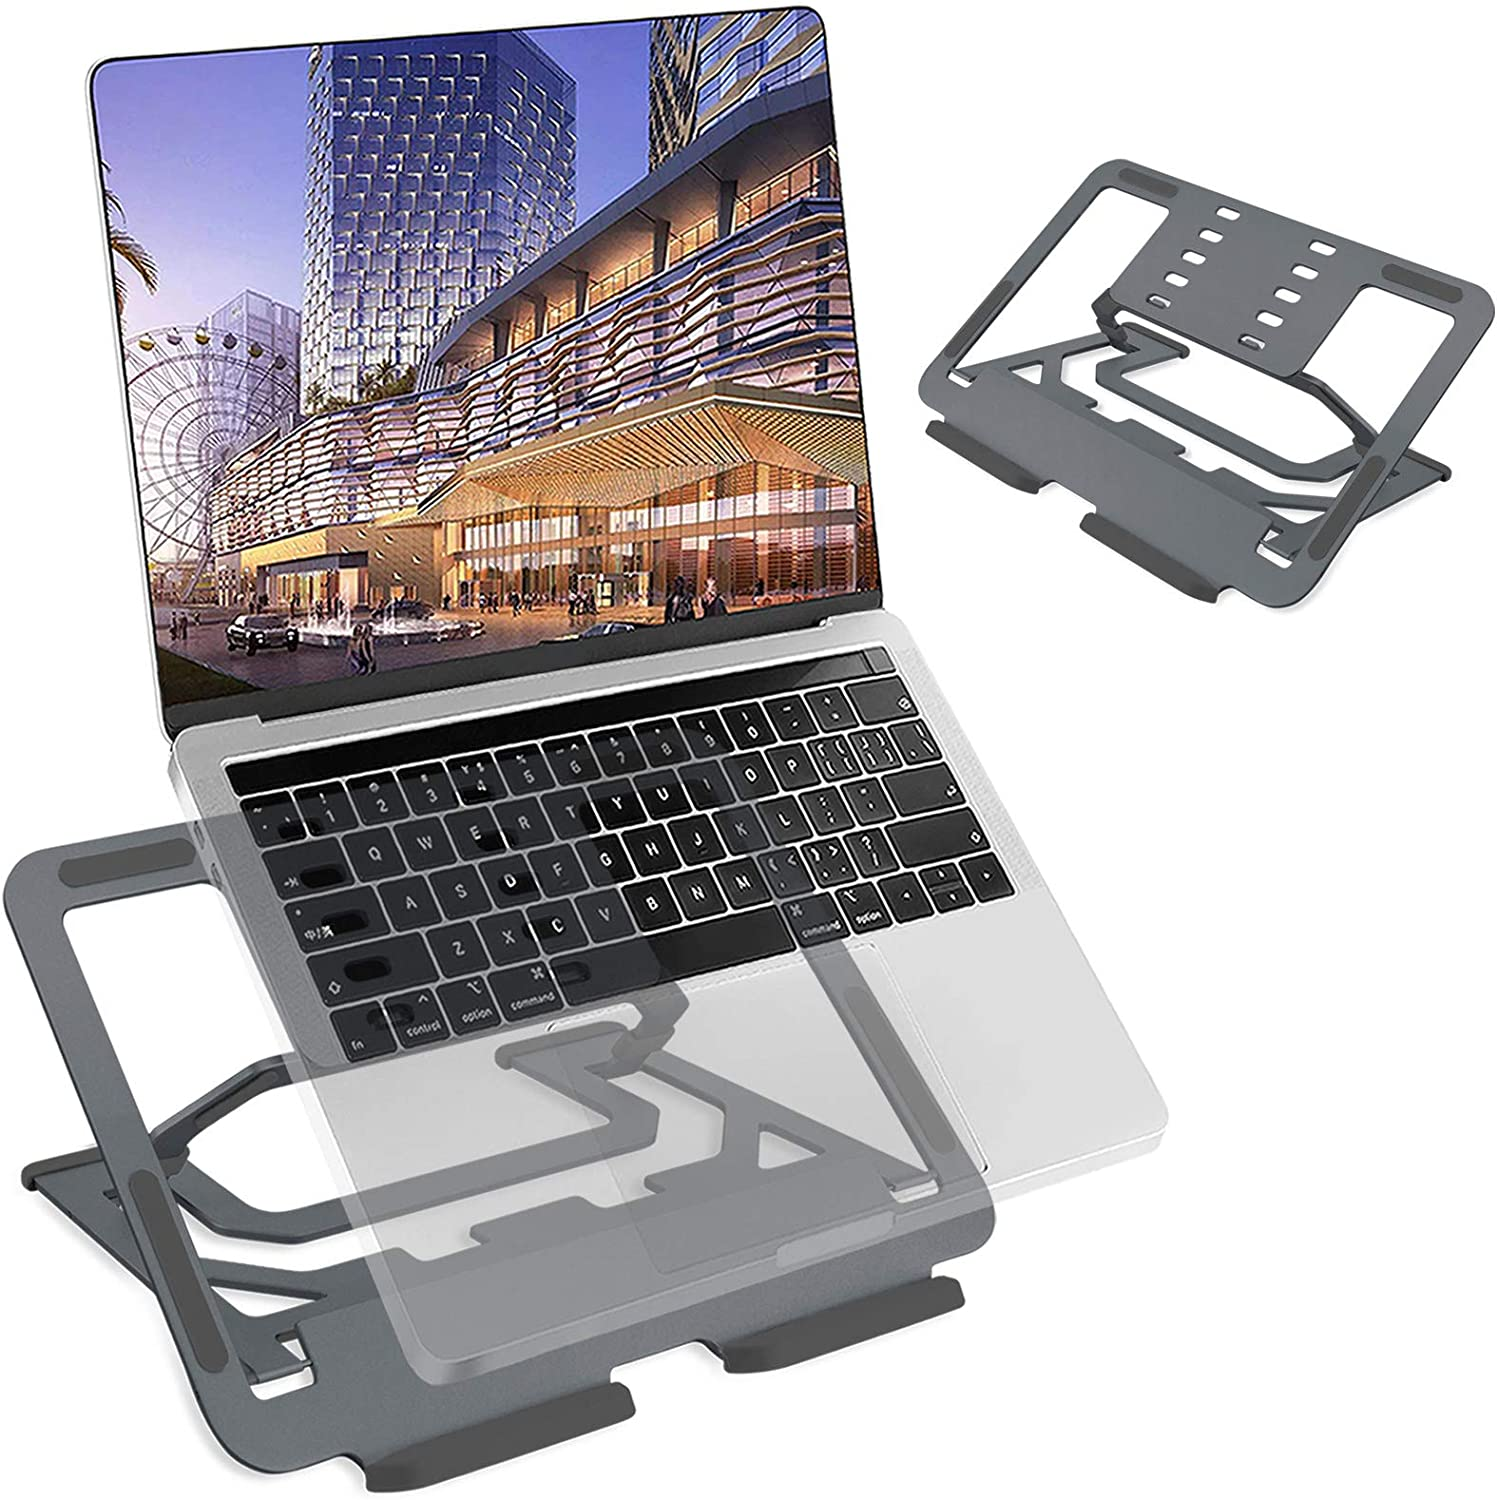 "TECOOL Laptop Stand, Multi-Angle Adjustable Aluminium Computer Riser Portable Foldable Notebook Holder Ventilated Cooling Tray for MacBook Air Pro Compatible with Most 9.7""-16"" Tablets Laptops, Grey"